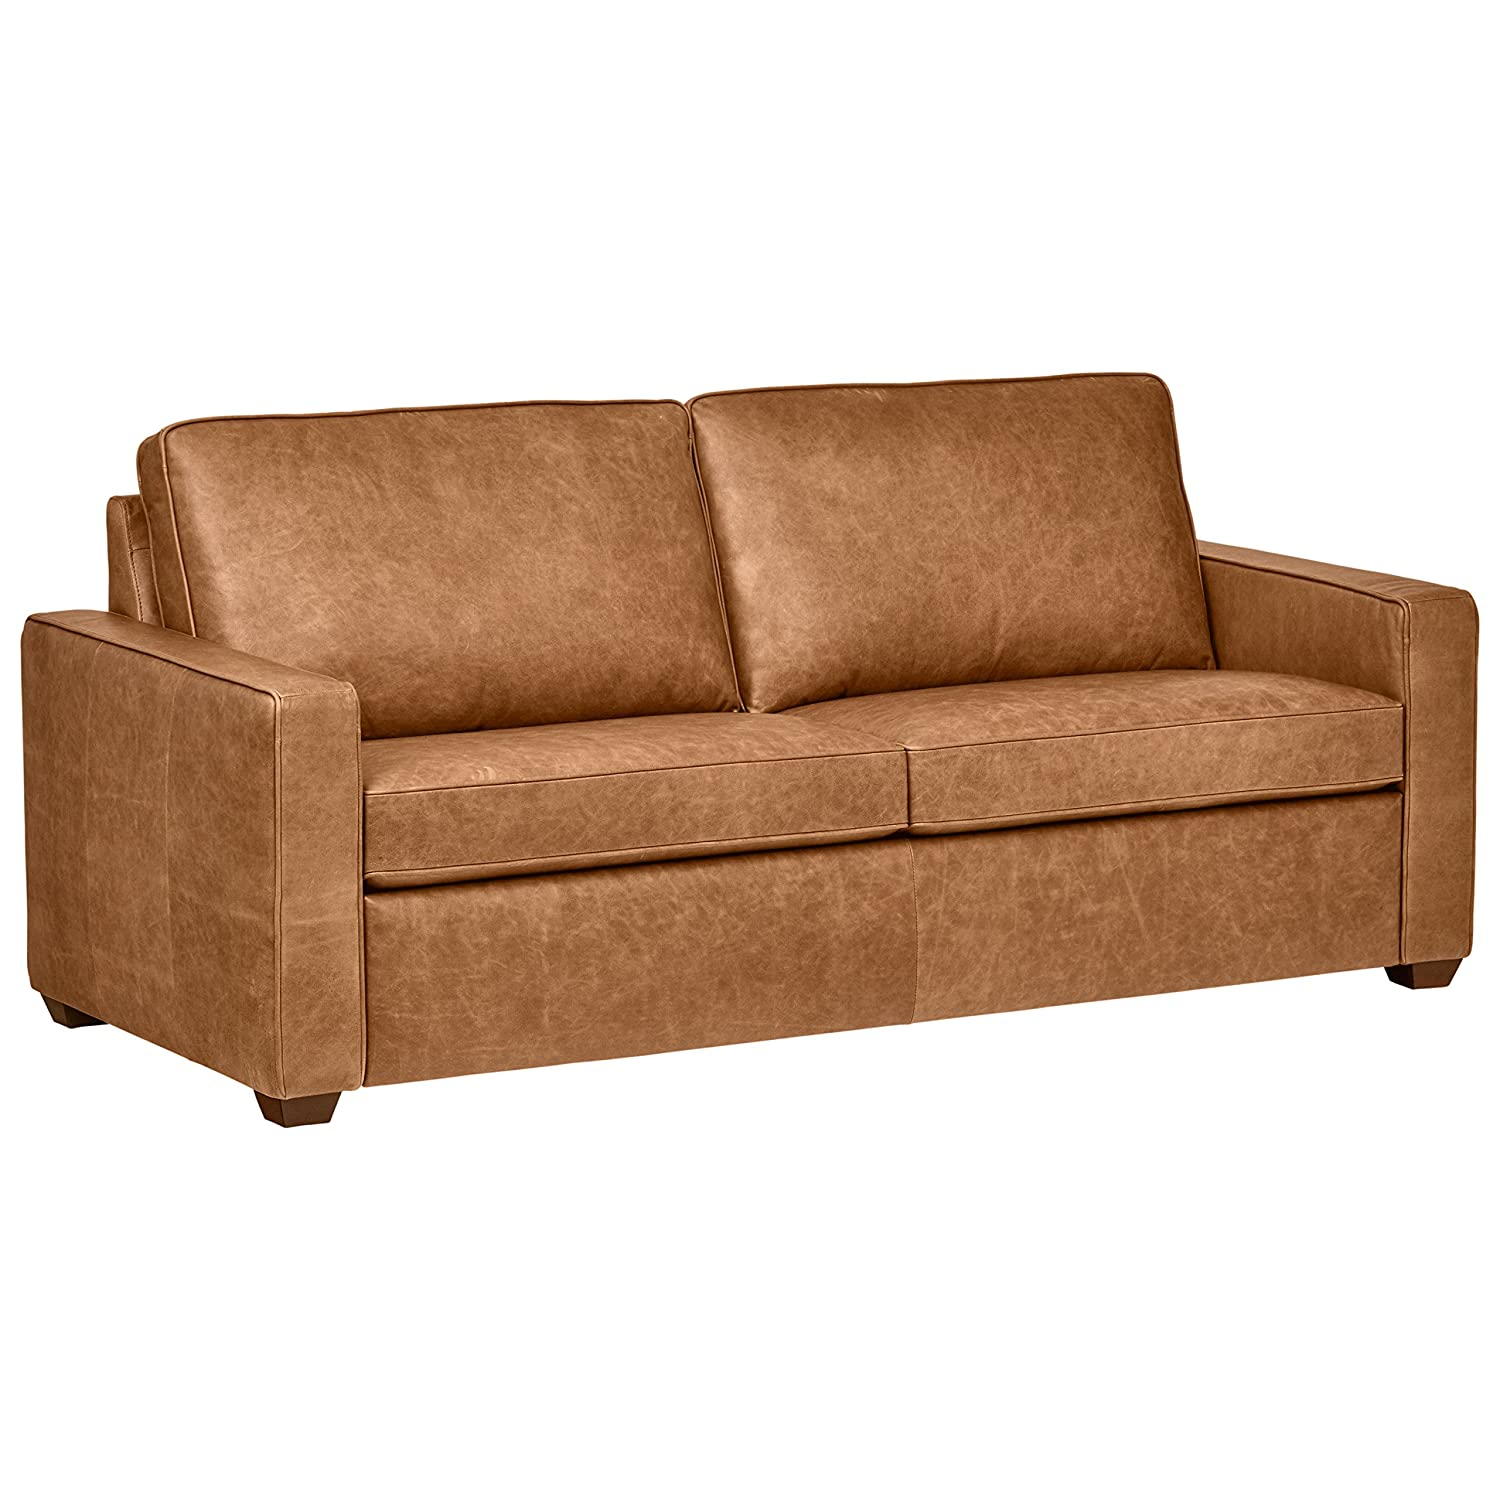 Pleasing Rivet Top Grain Leather Sofa Andrews Modern Classic 82 W Cognac Download Free Architecture Designs Salvmadebymaigaardcom